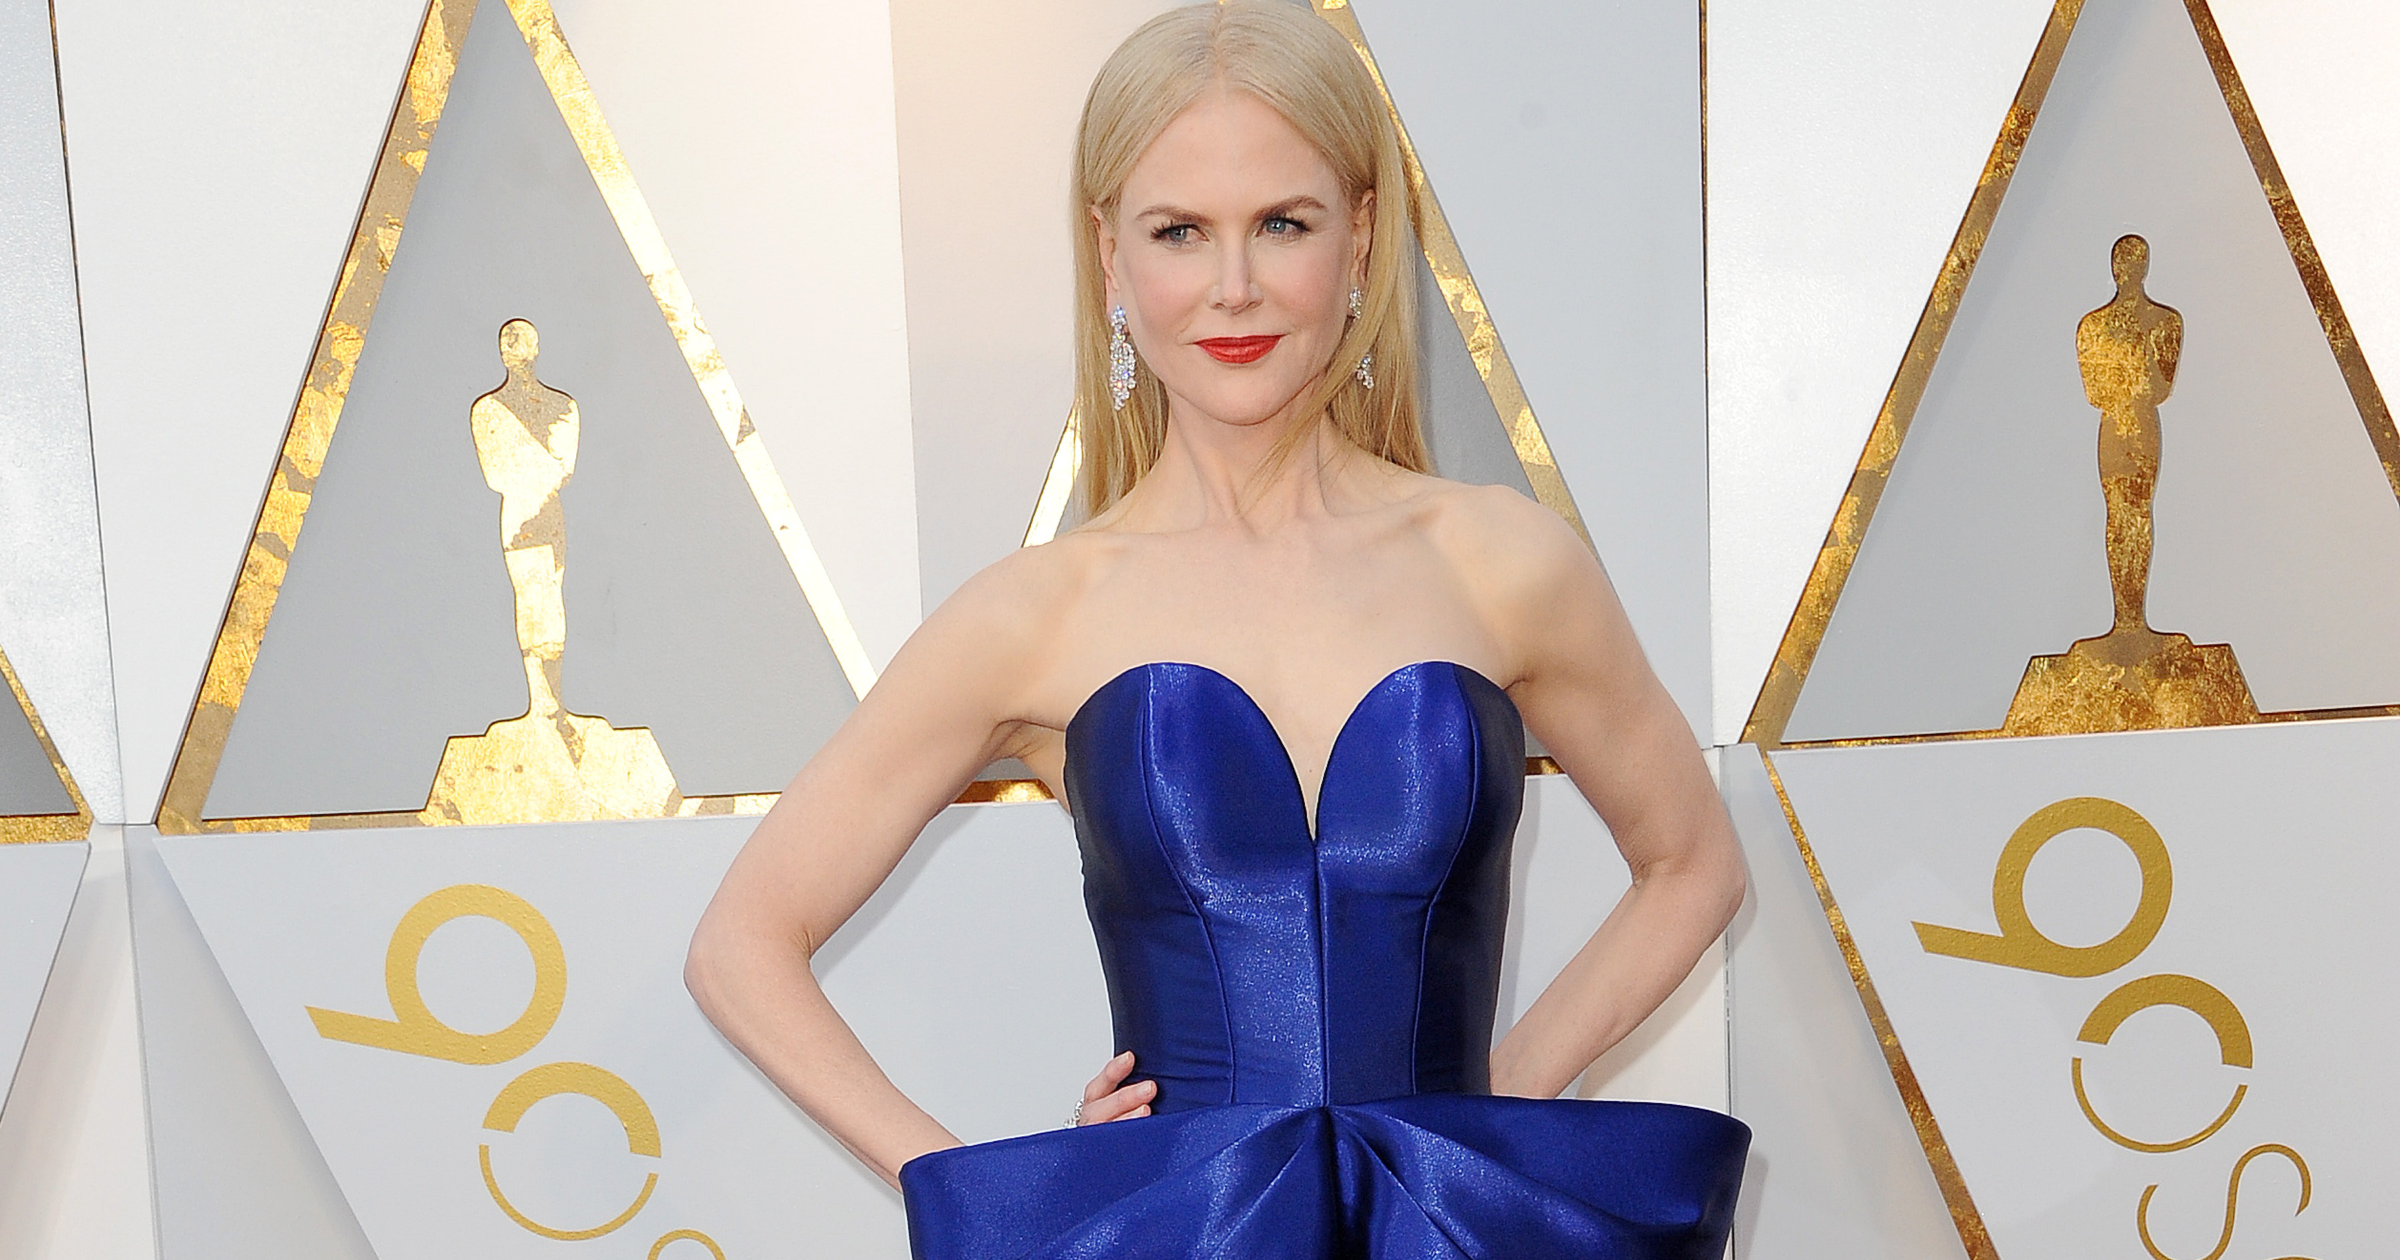 Nicole Kidman at the 90th Annual Academy Awards held at the Dolby Theatre in Hollywood